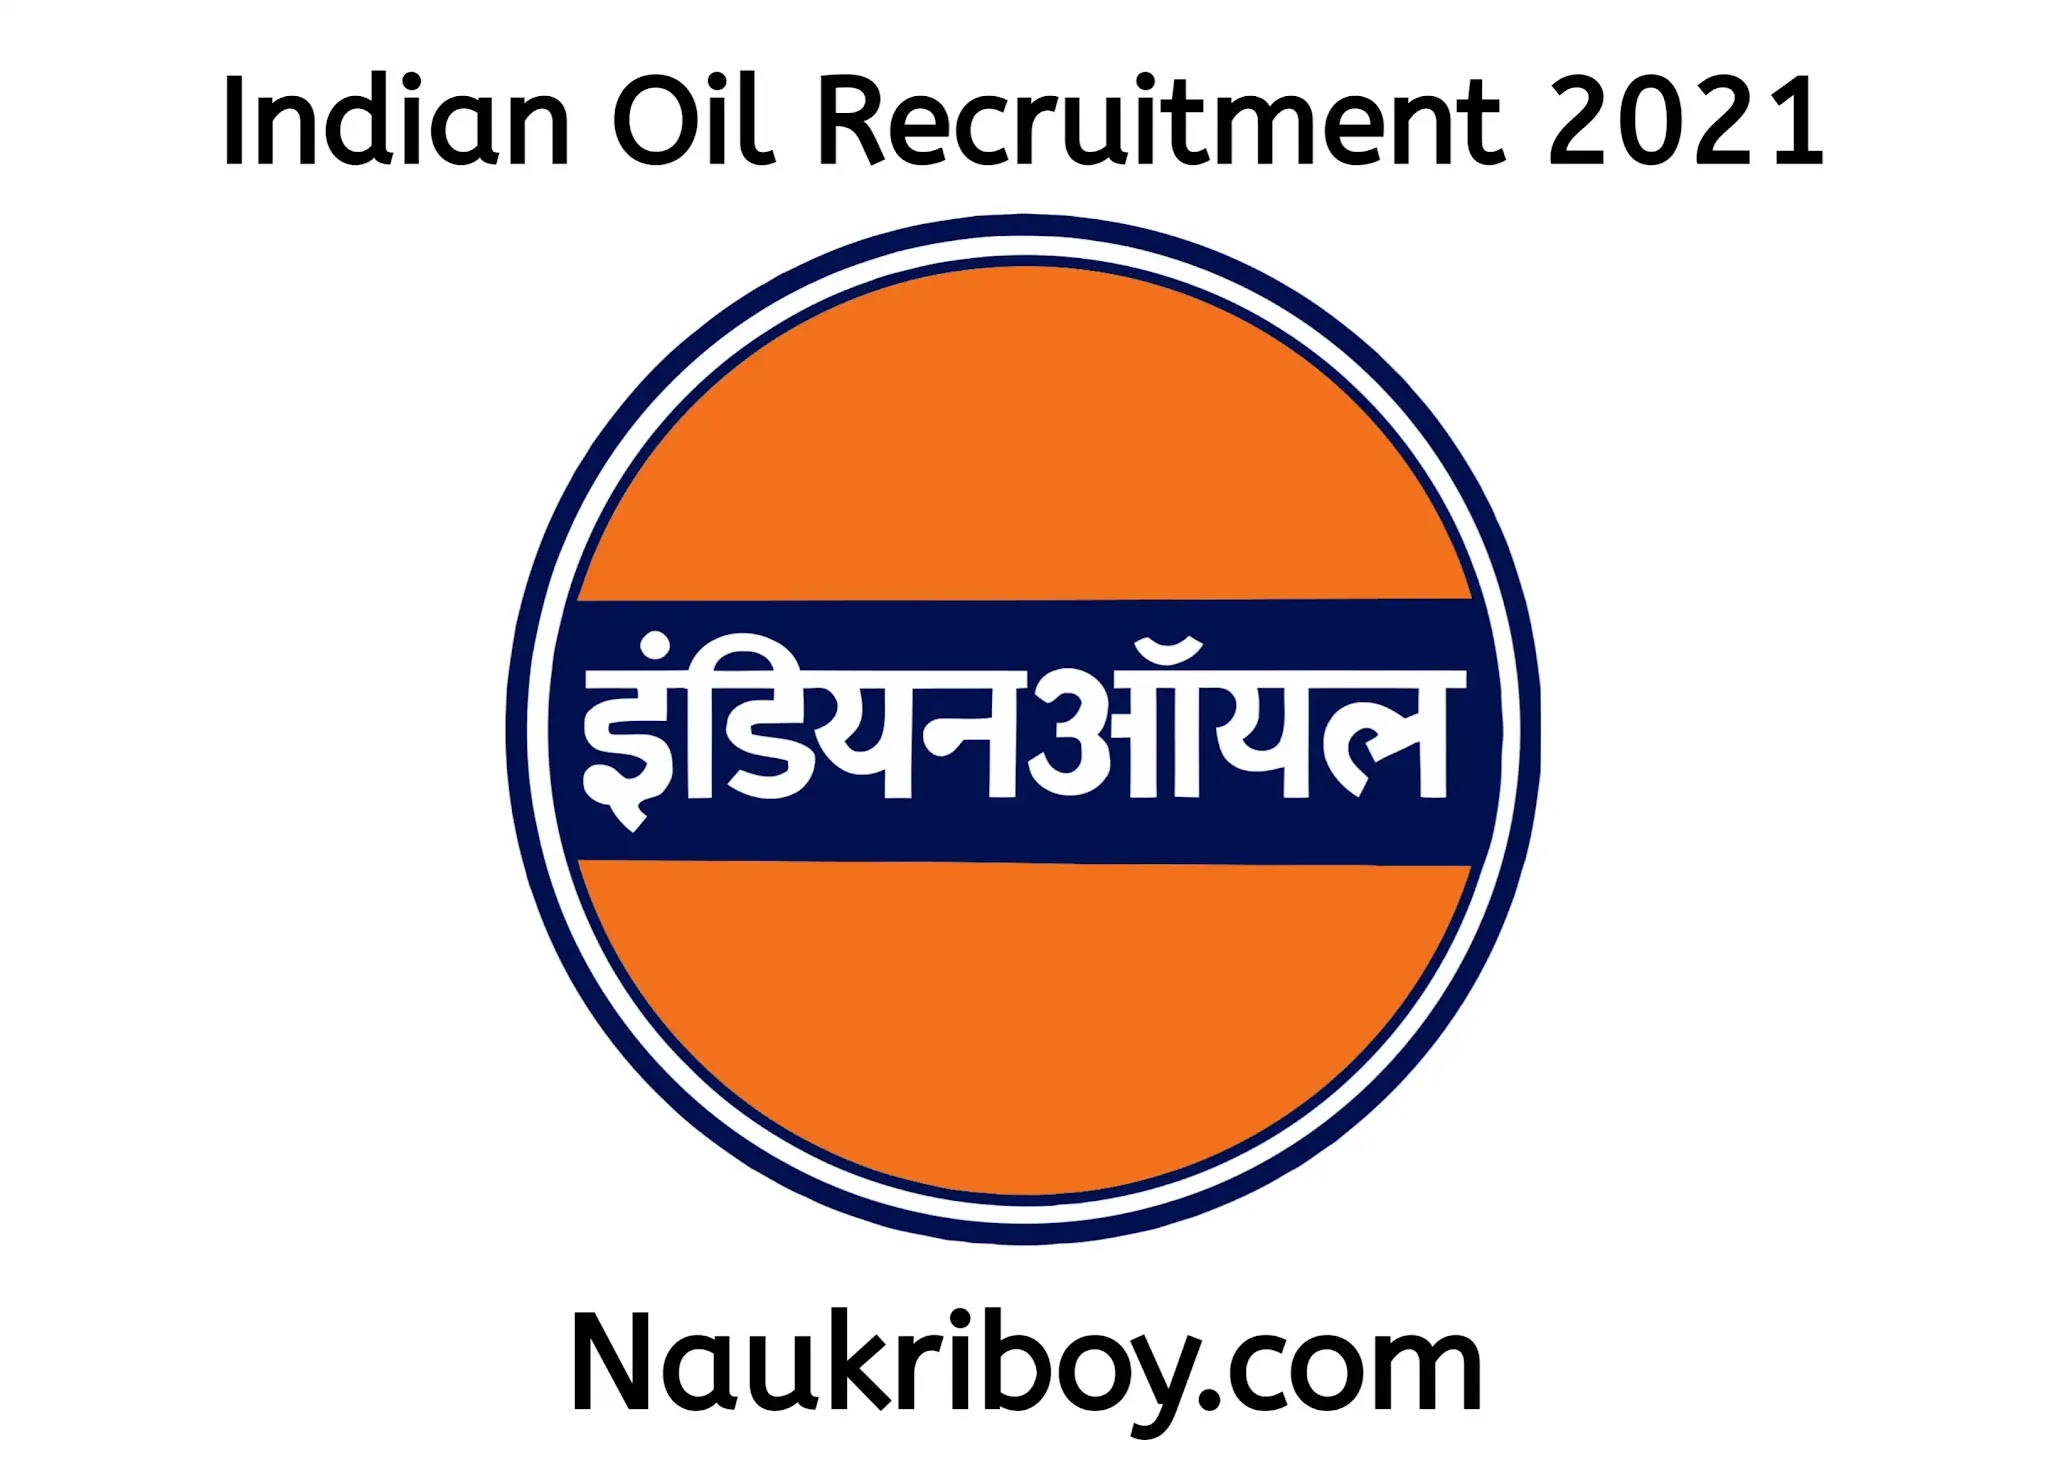 iocl recruitment 2021 letest iocl vacancy 2021 Indian oil recruitment 2021 iocl bharti 2021 naukriboy.com naukri boy